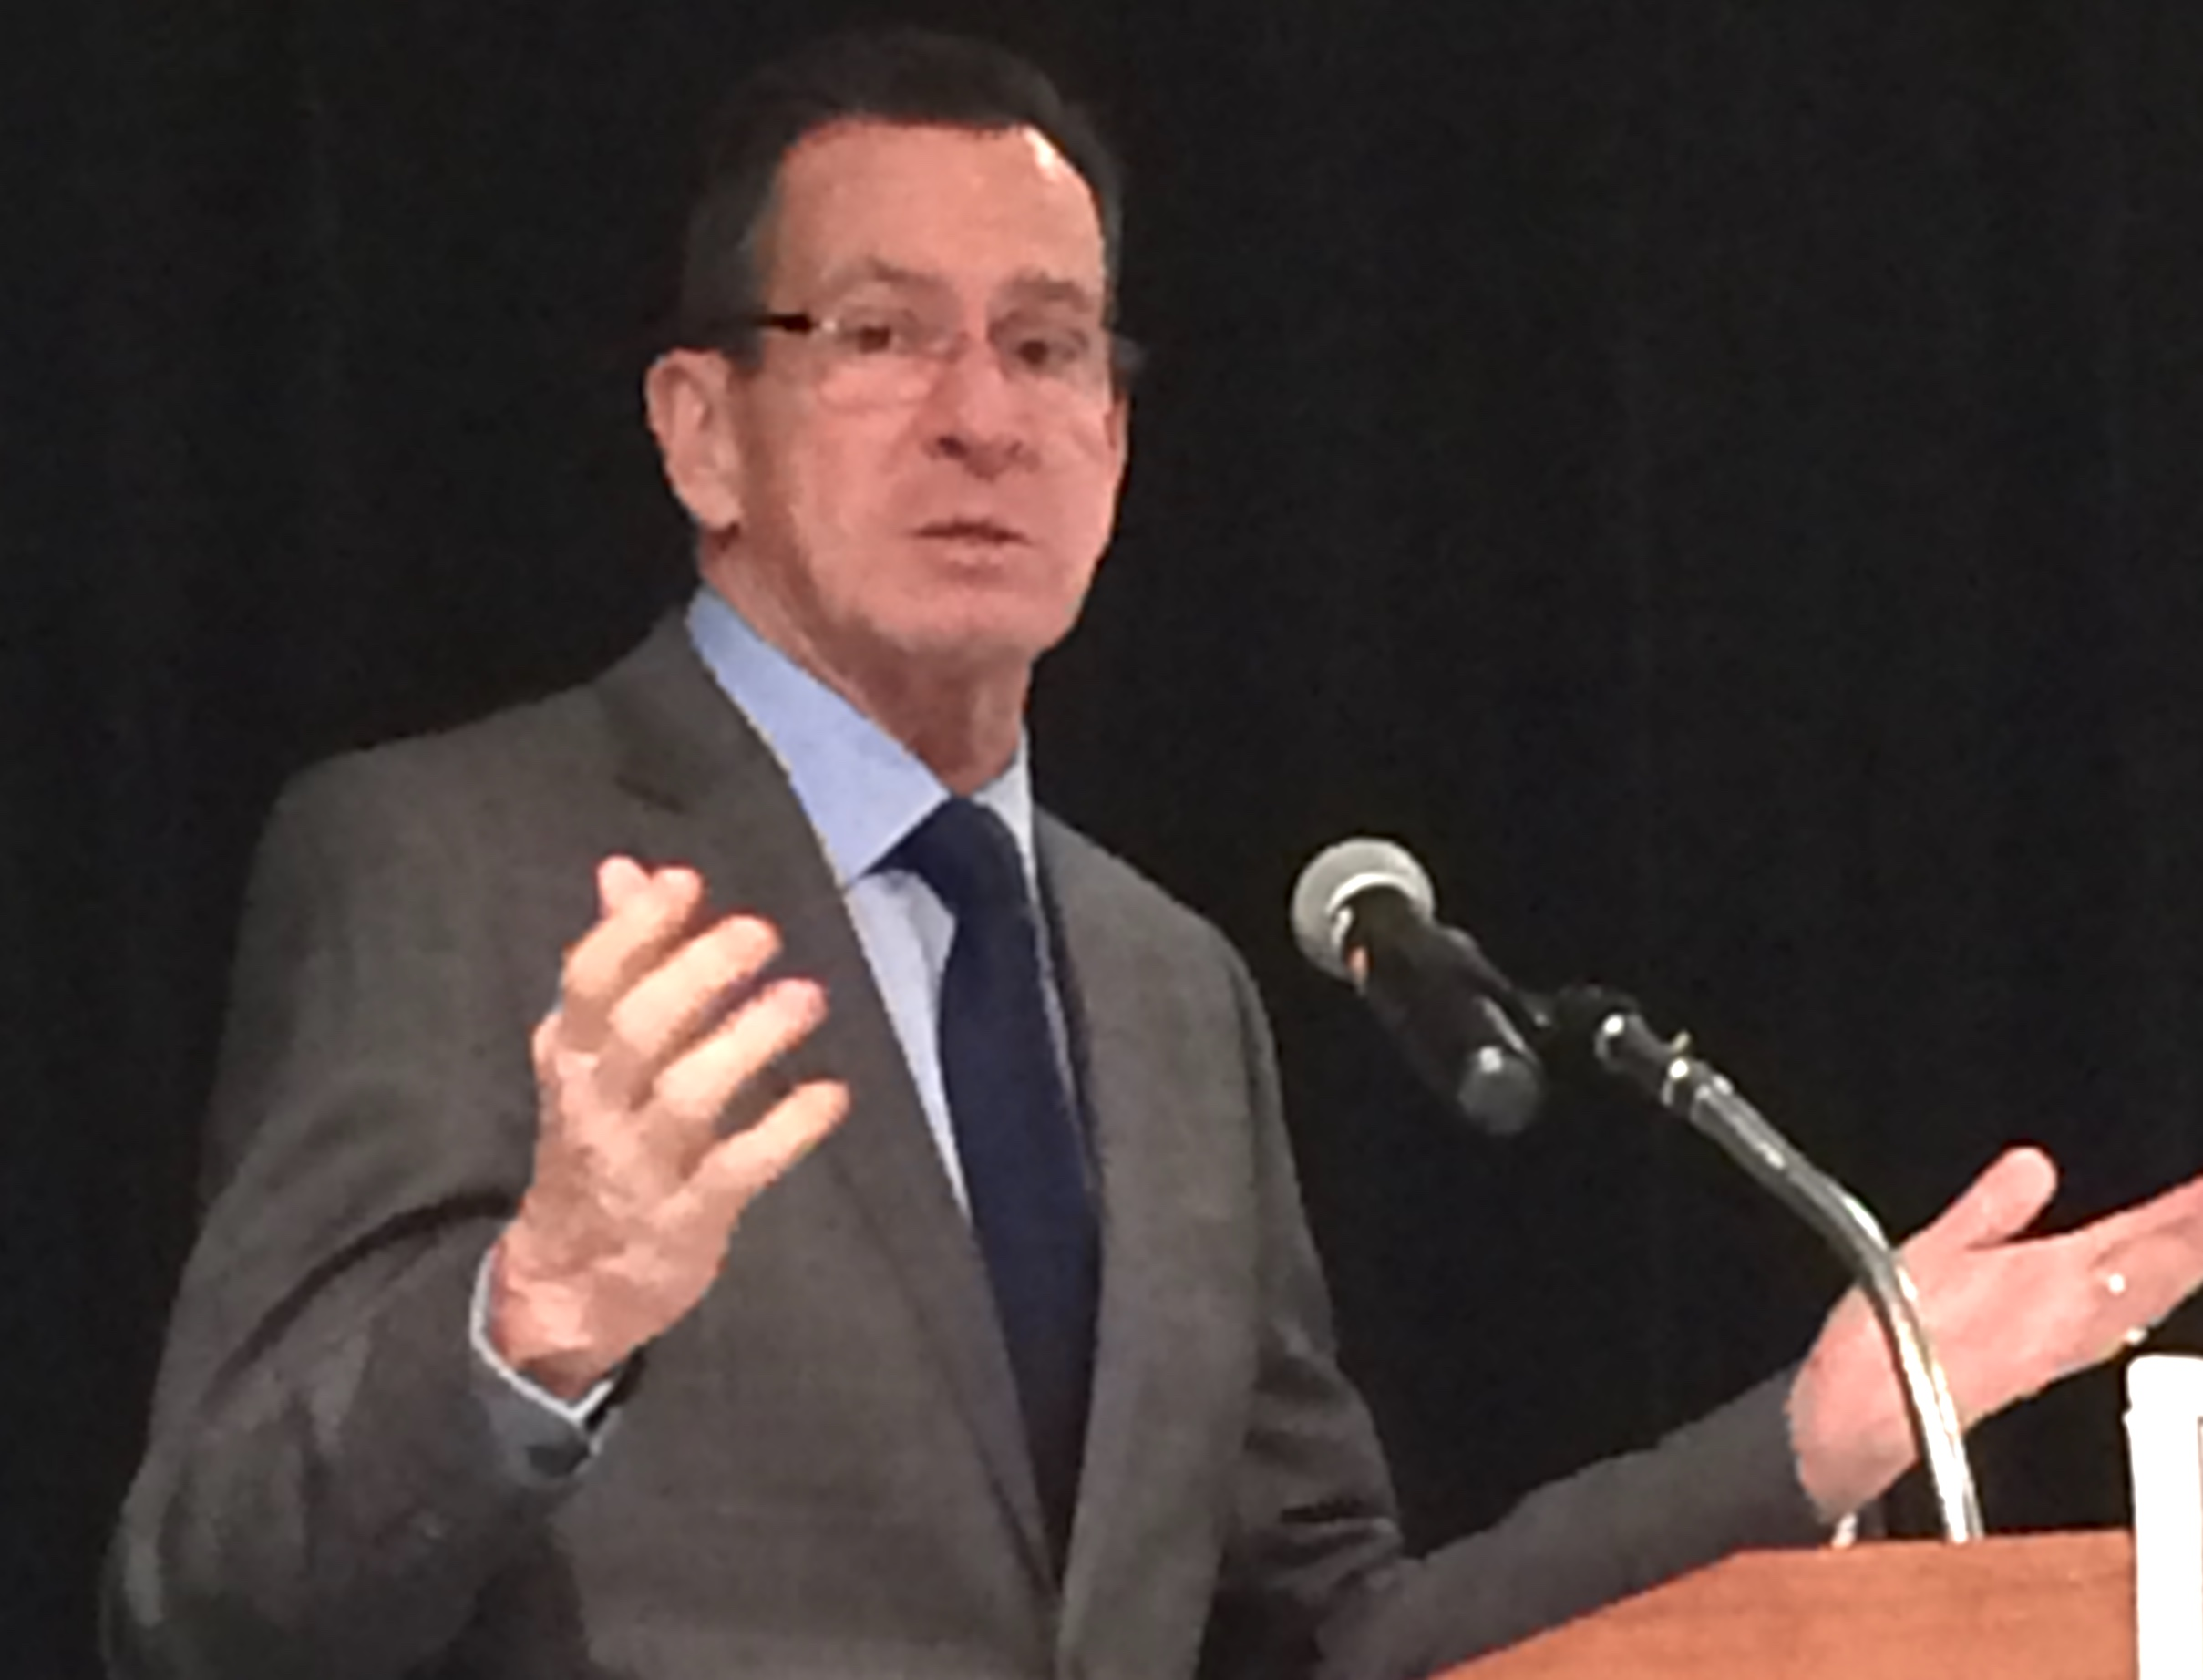 Malloy begins making a case for changes to local school funding